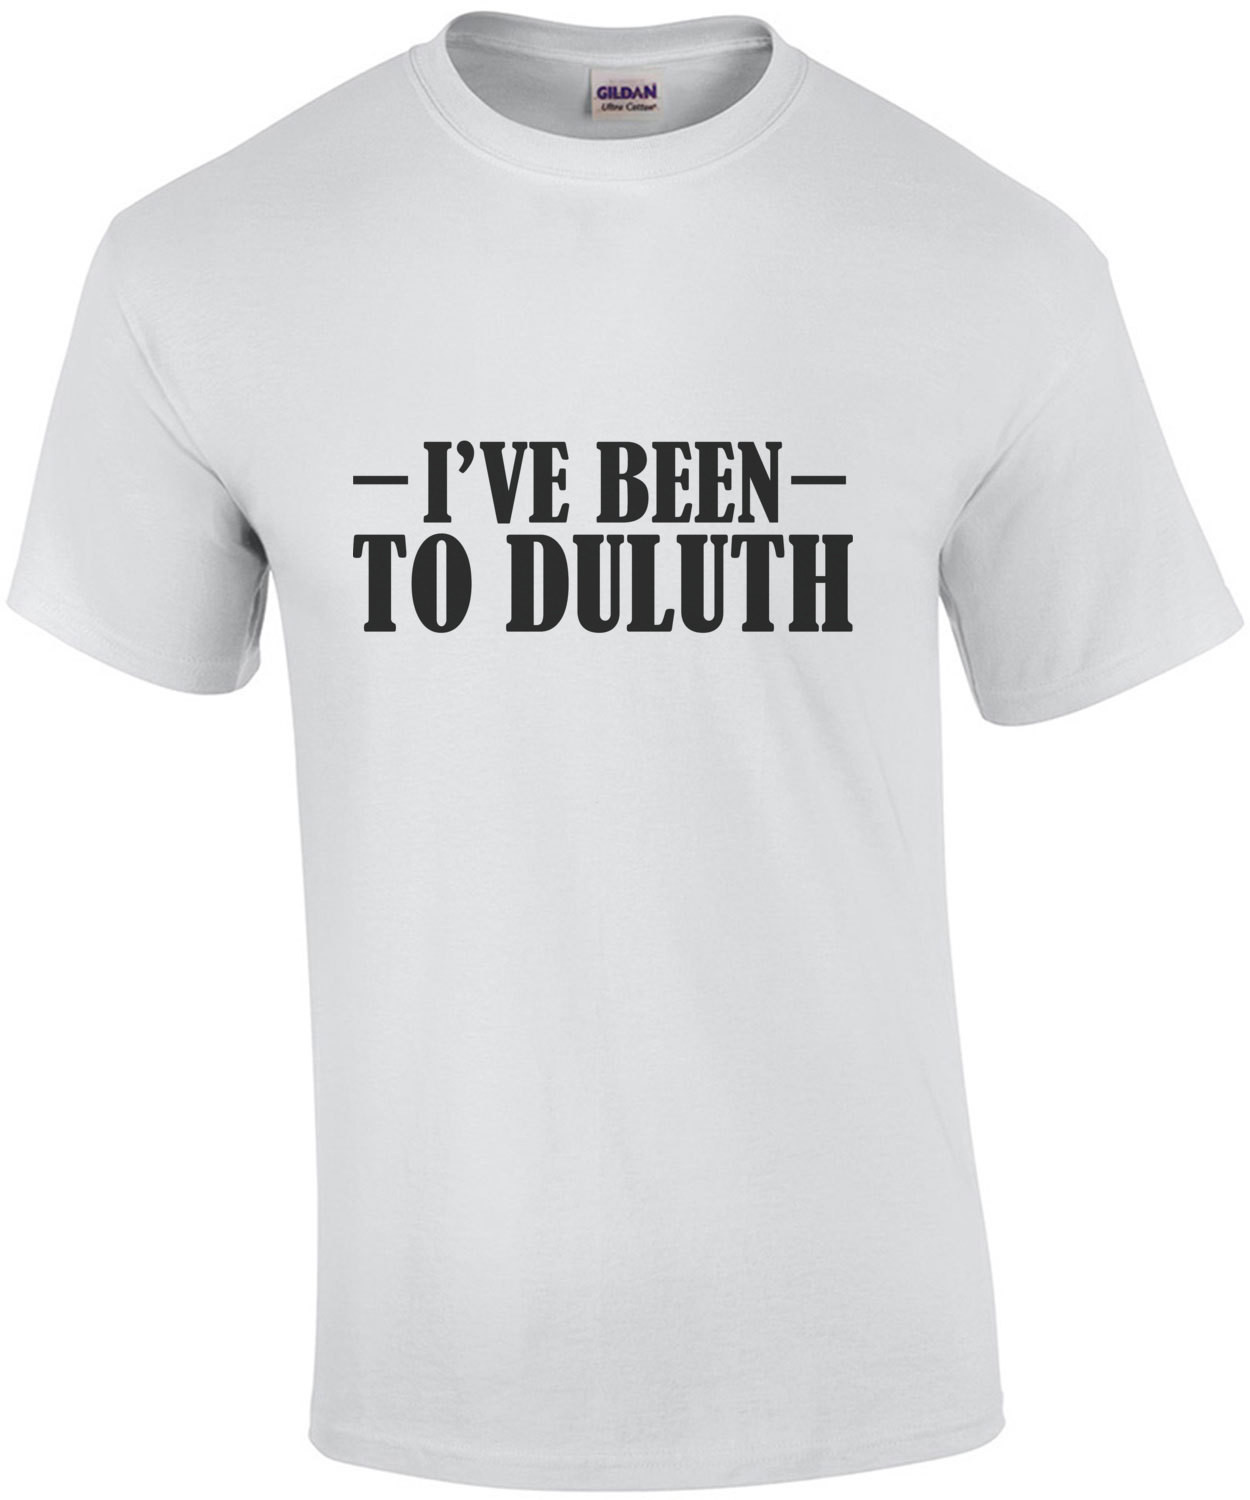 I've been to duluth - The Great Outdoors - John Candy t-shirt Funny 80's t-shirt